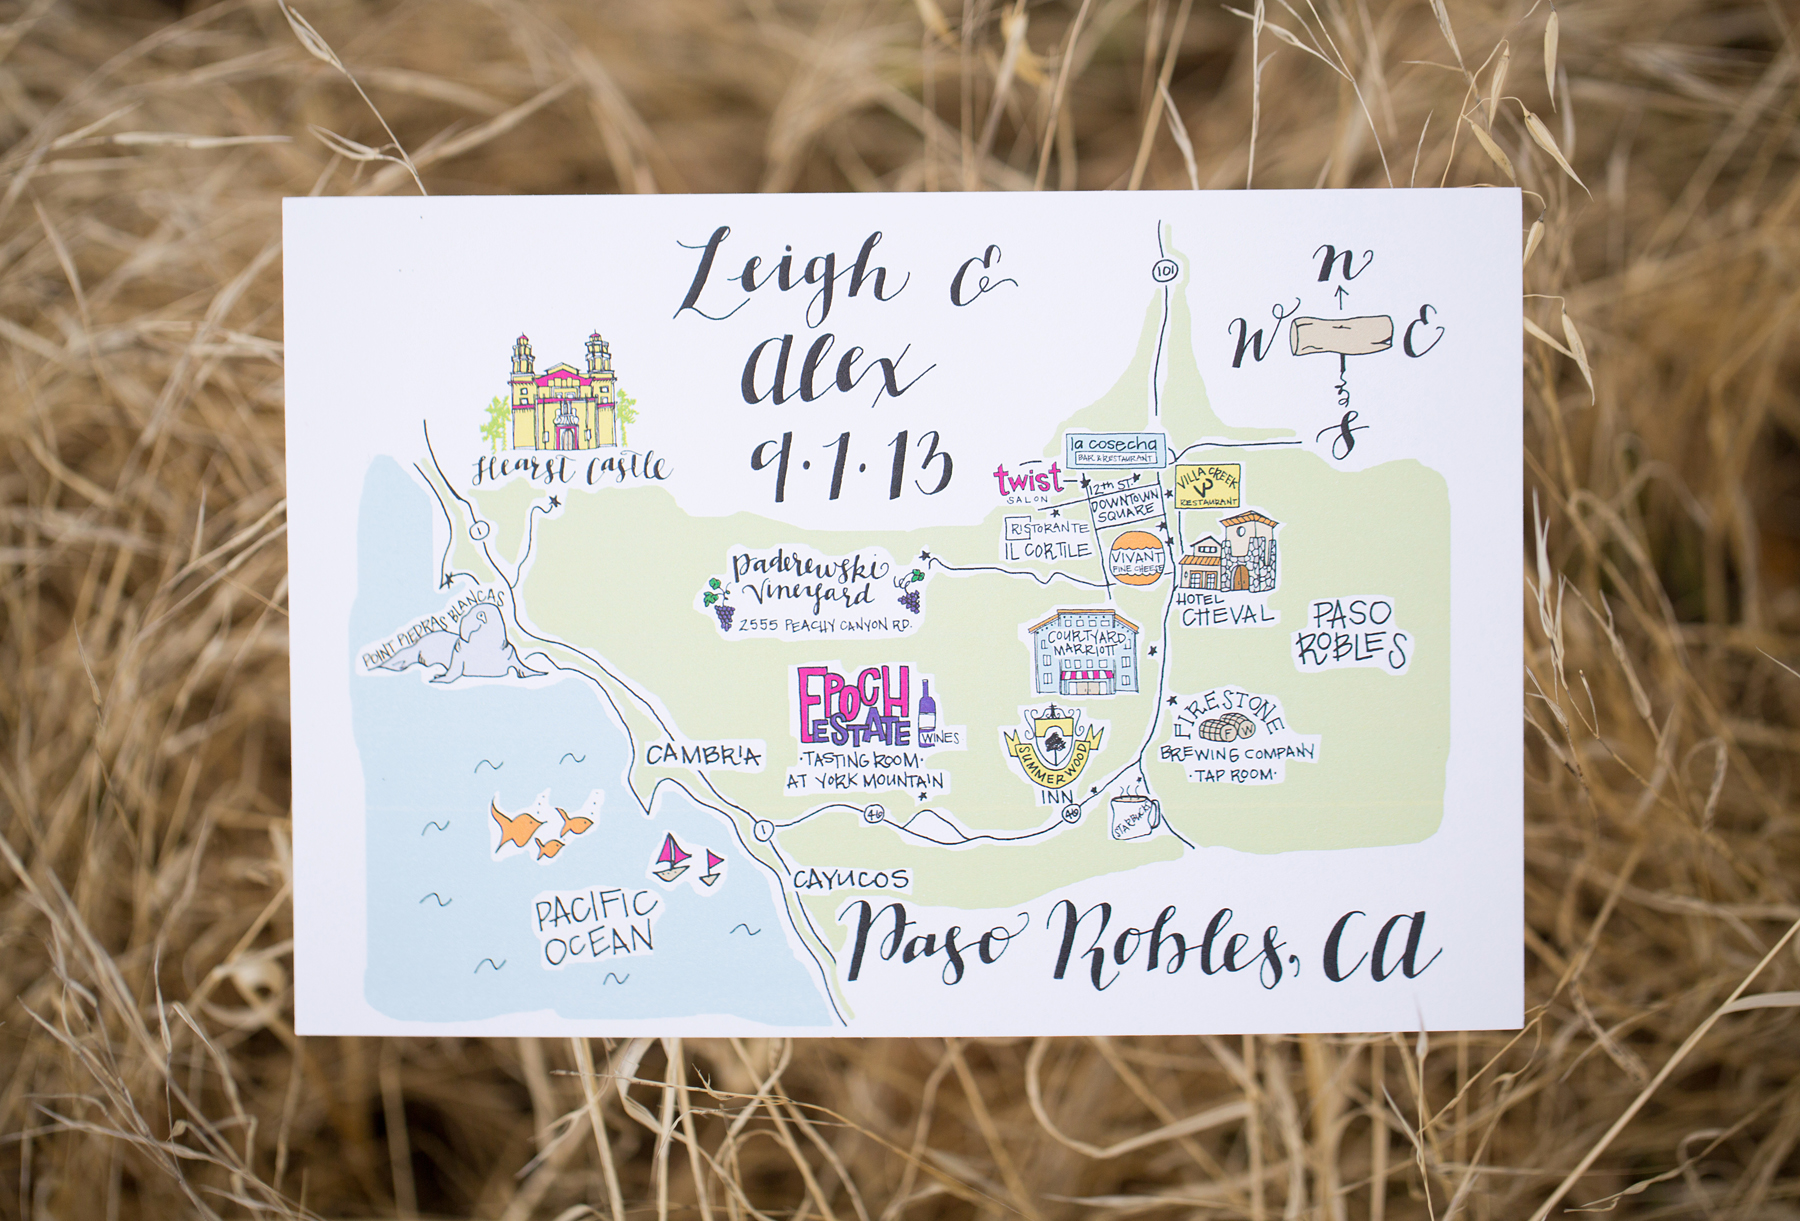 paso robles map wedding invitation - Make Wedding Invitations